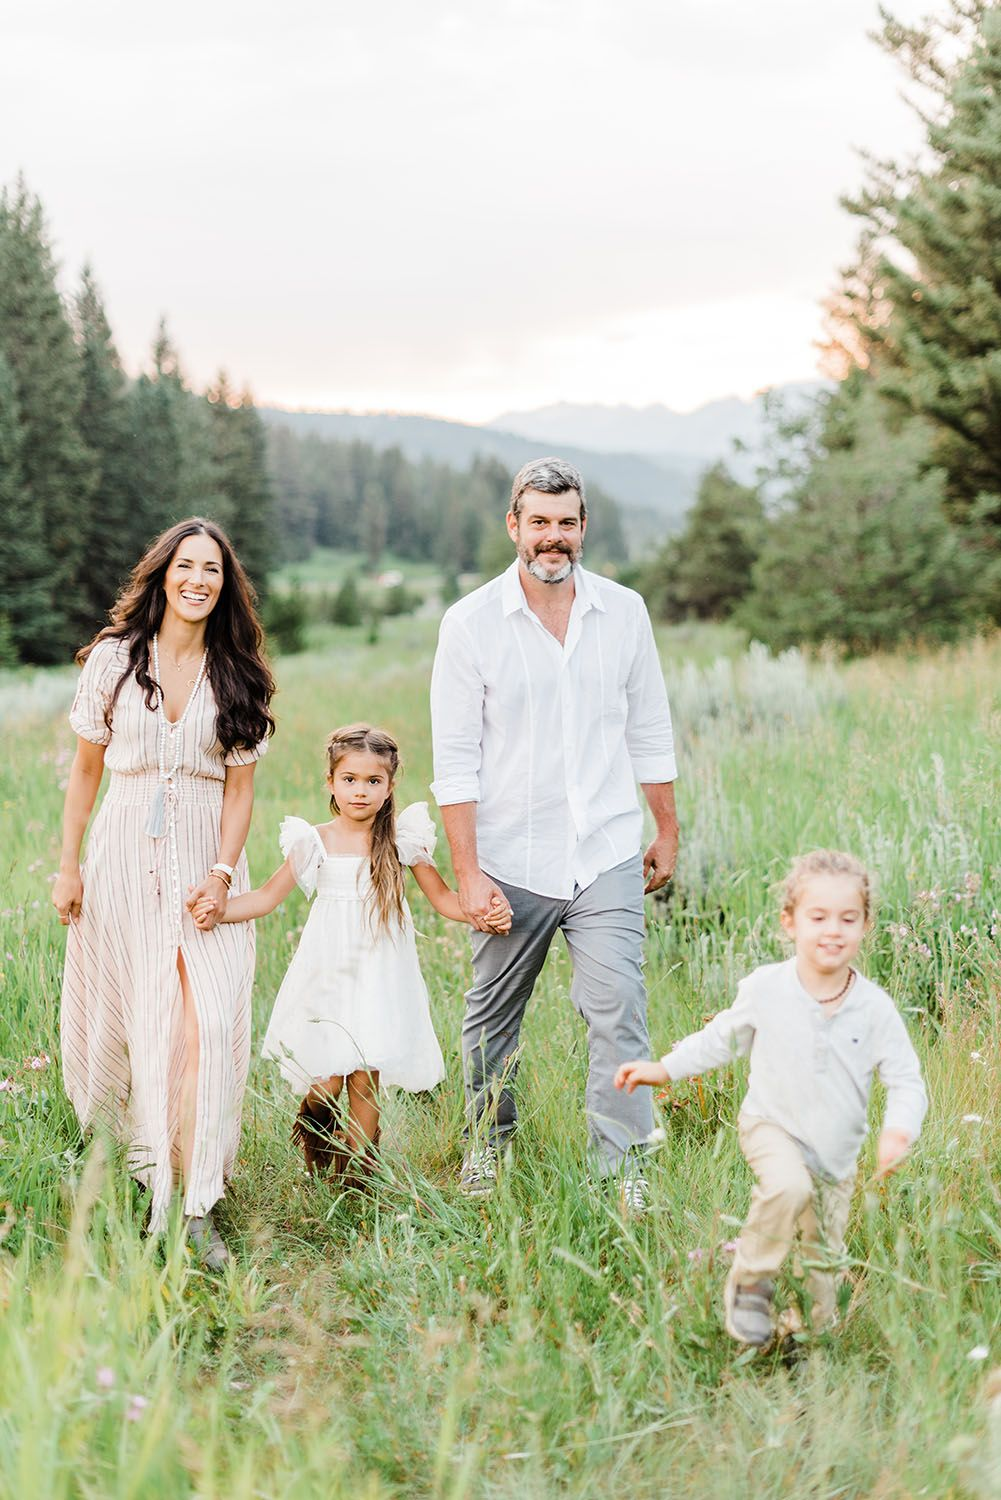 Keeley McKay Photography, stylish family vacation photography session in the mountains of Big Sky, Montana. #familyphotooutfits